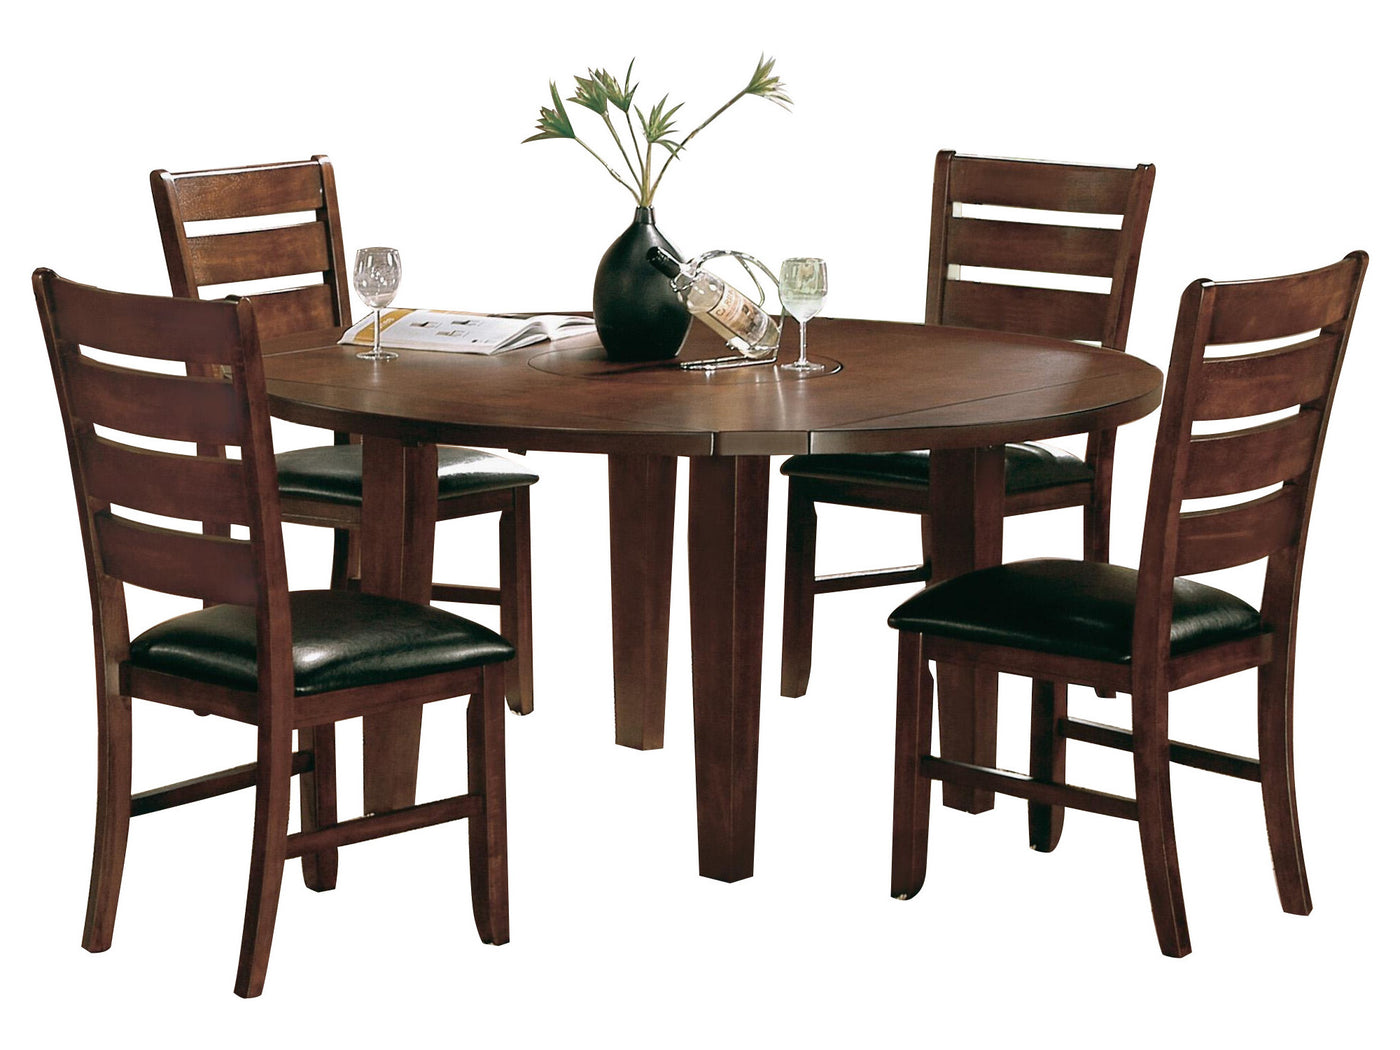 Homelegance ameillia 5pc dining set round table 4 chair in dark brown